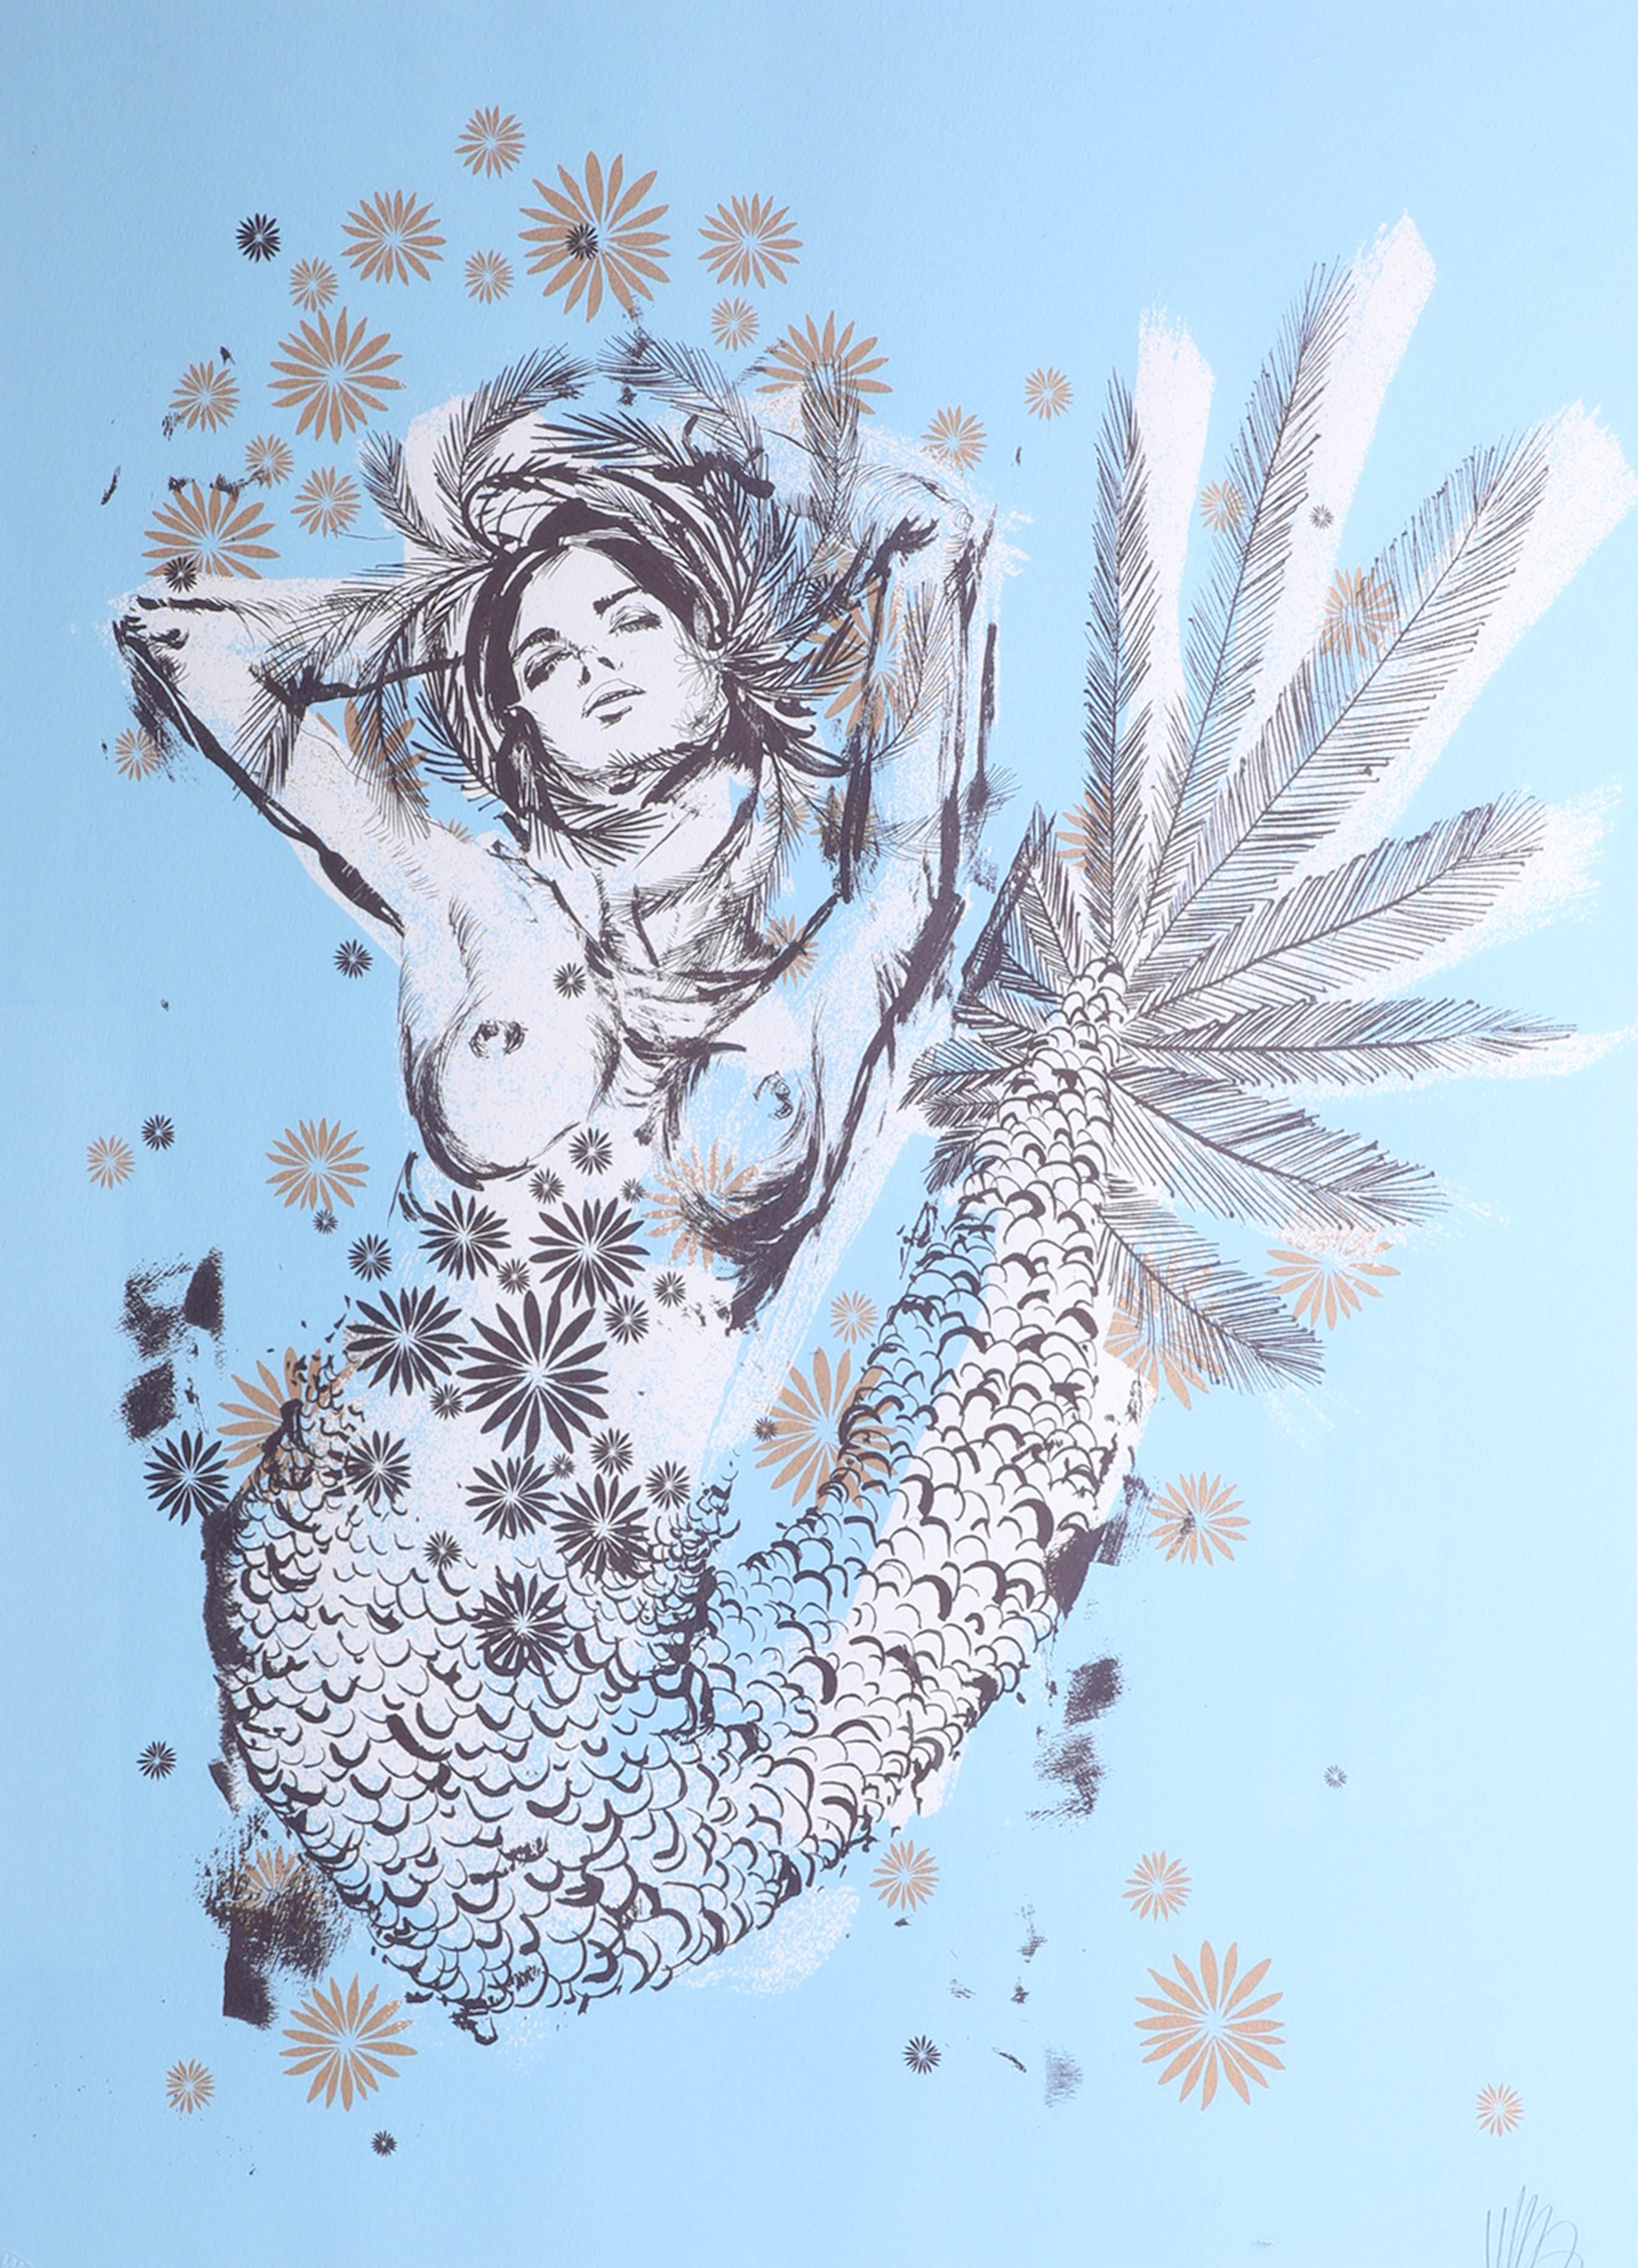 Lot 039 - Kelsey Brookes (US), limited edition print 'Mermaid', No 22/140, framed and glazed, overall size